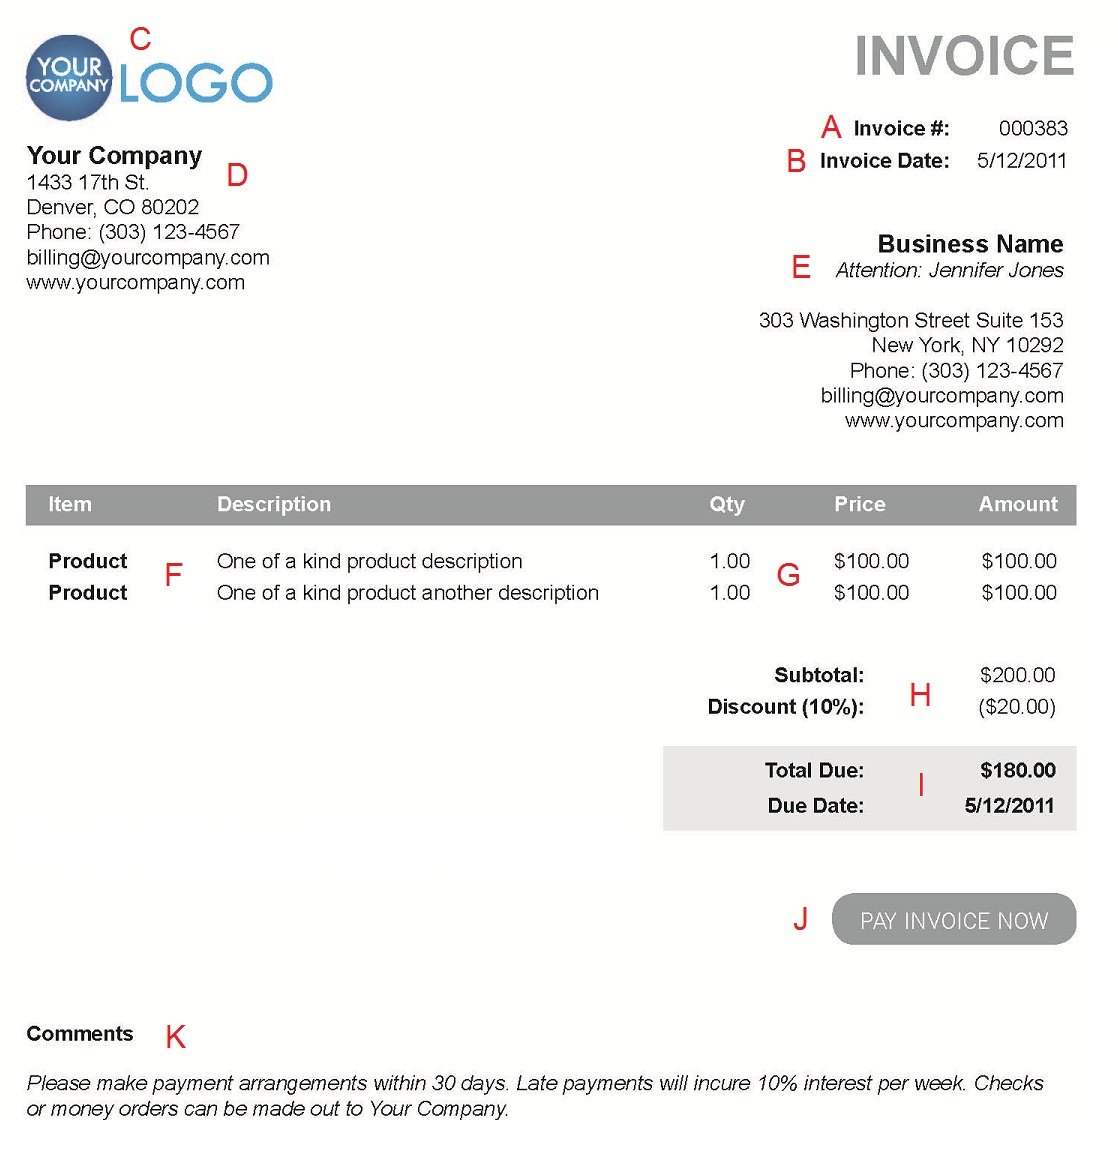 Gpwaus  Remarkable The  Different Sections Of An Electronic Payment Invoice With Exquisite A  With Captivating Advance Payment Invoice Sample Also Business Invoice Templates Free In Addition Invoice Payment Options And Template Commercial Invoice As Well As Australian Invoice Additionally Invoice Web From Paysimplecom With Gpwaus  Exquisite The  Different Sections Of An Electronic Payment Invoice With Captivating A  And Remarkable Advance Payment Invoice Sample Also Business Invoice Templates Free In Addition Invoice Payment Options From Paysimplecom